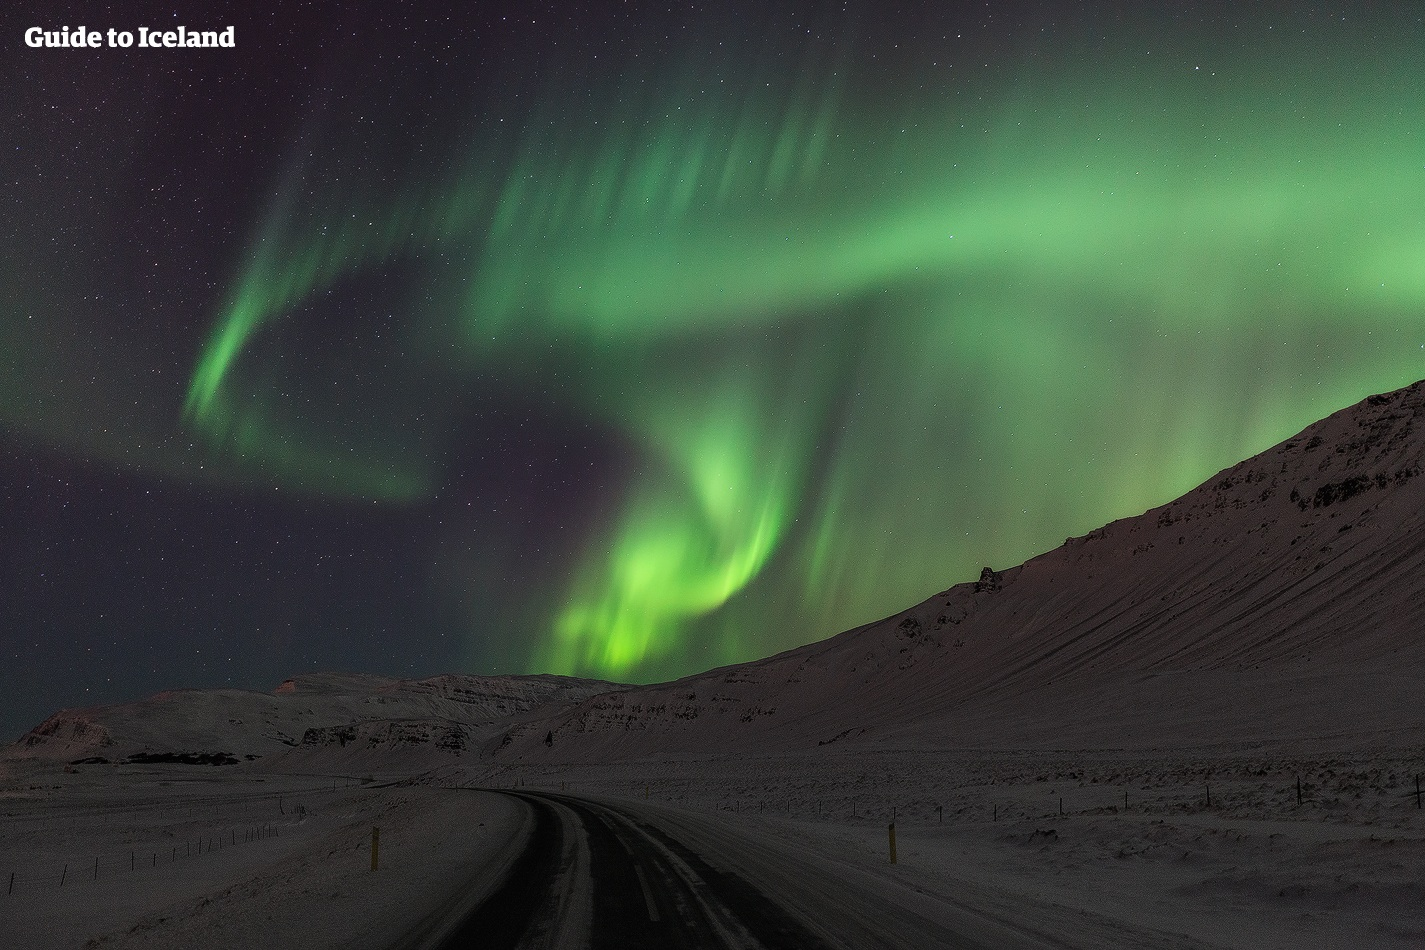 Travel to Iceland during winter and see the Northern Lights spiralling in the sky above you.